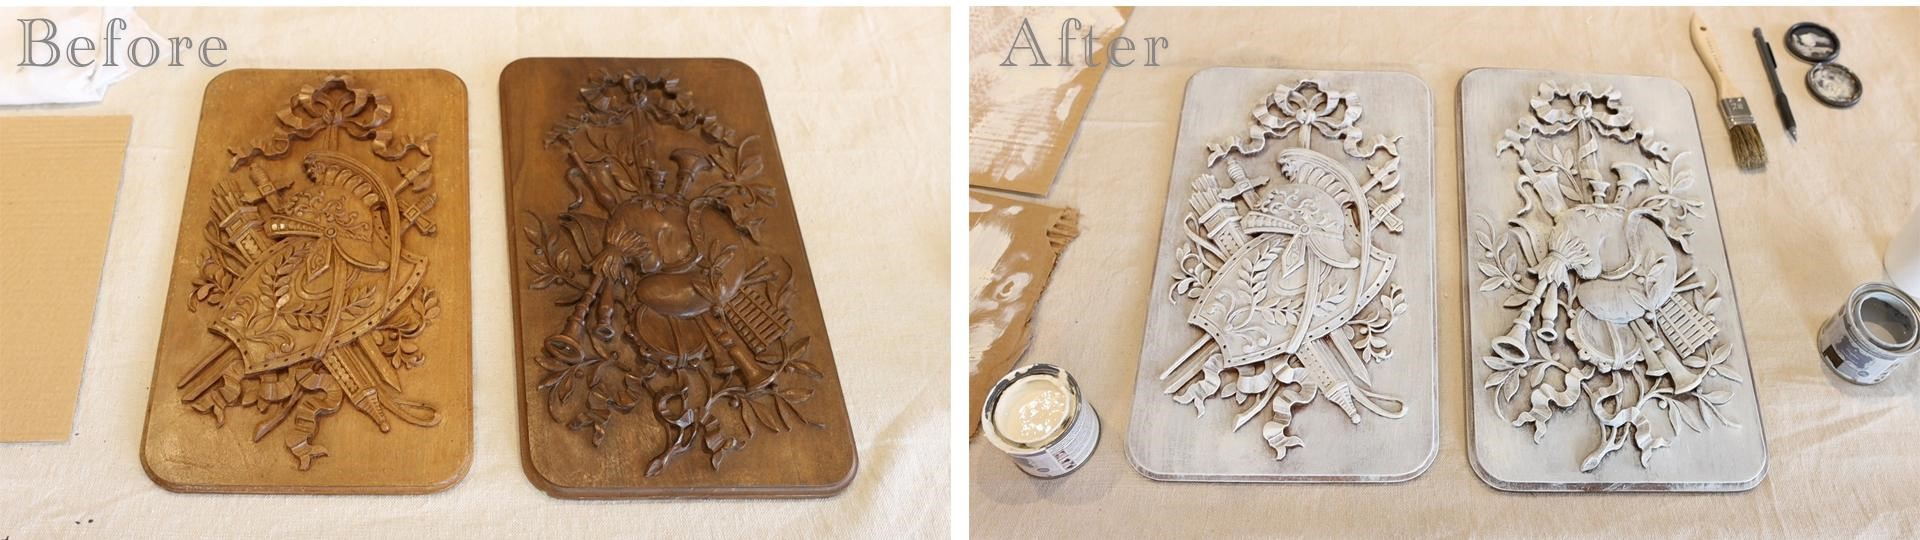 Before and after antique panel transformation using Amitha Verma Chalk Finish Paint.